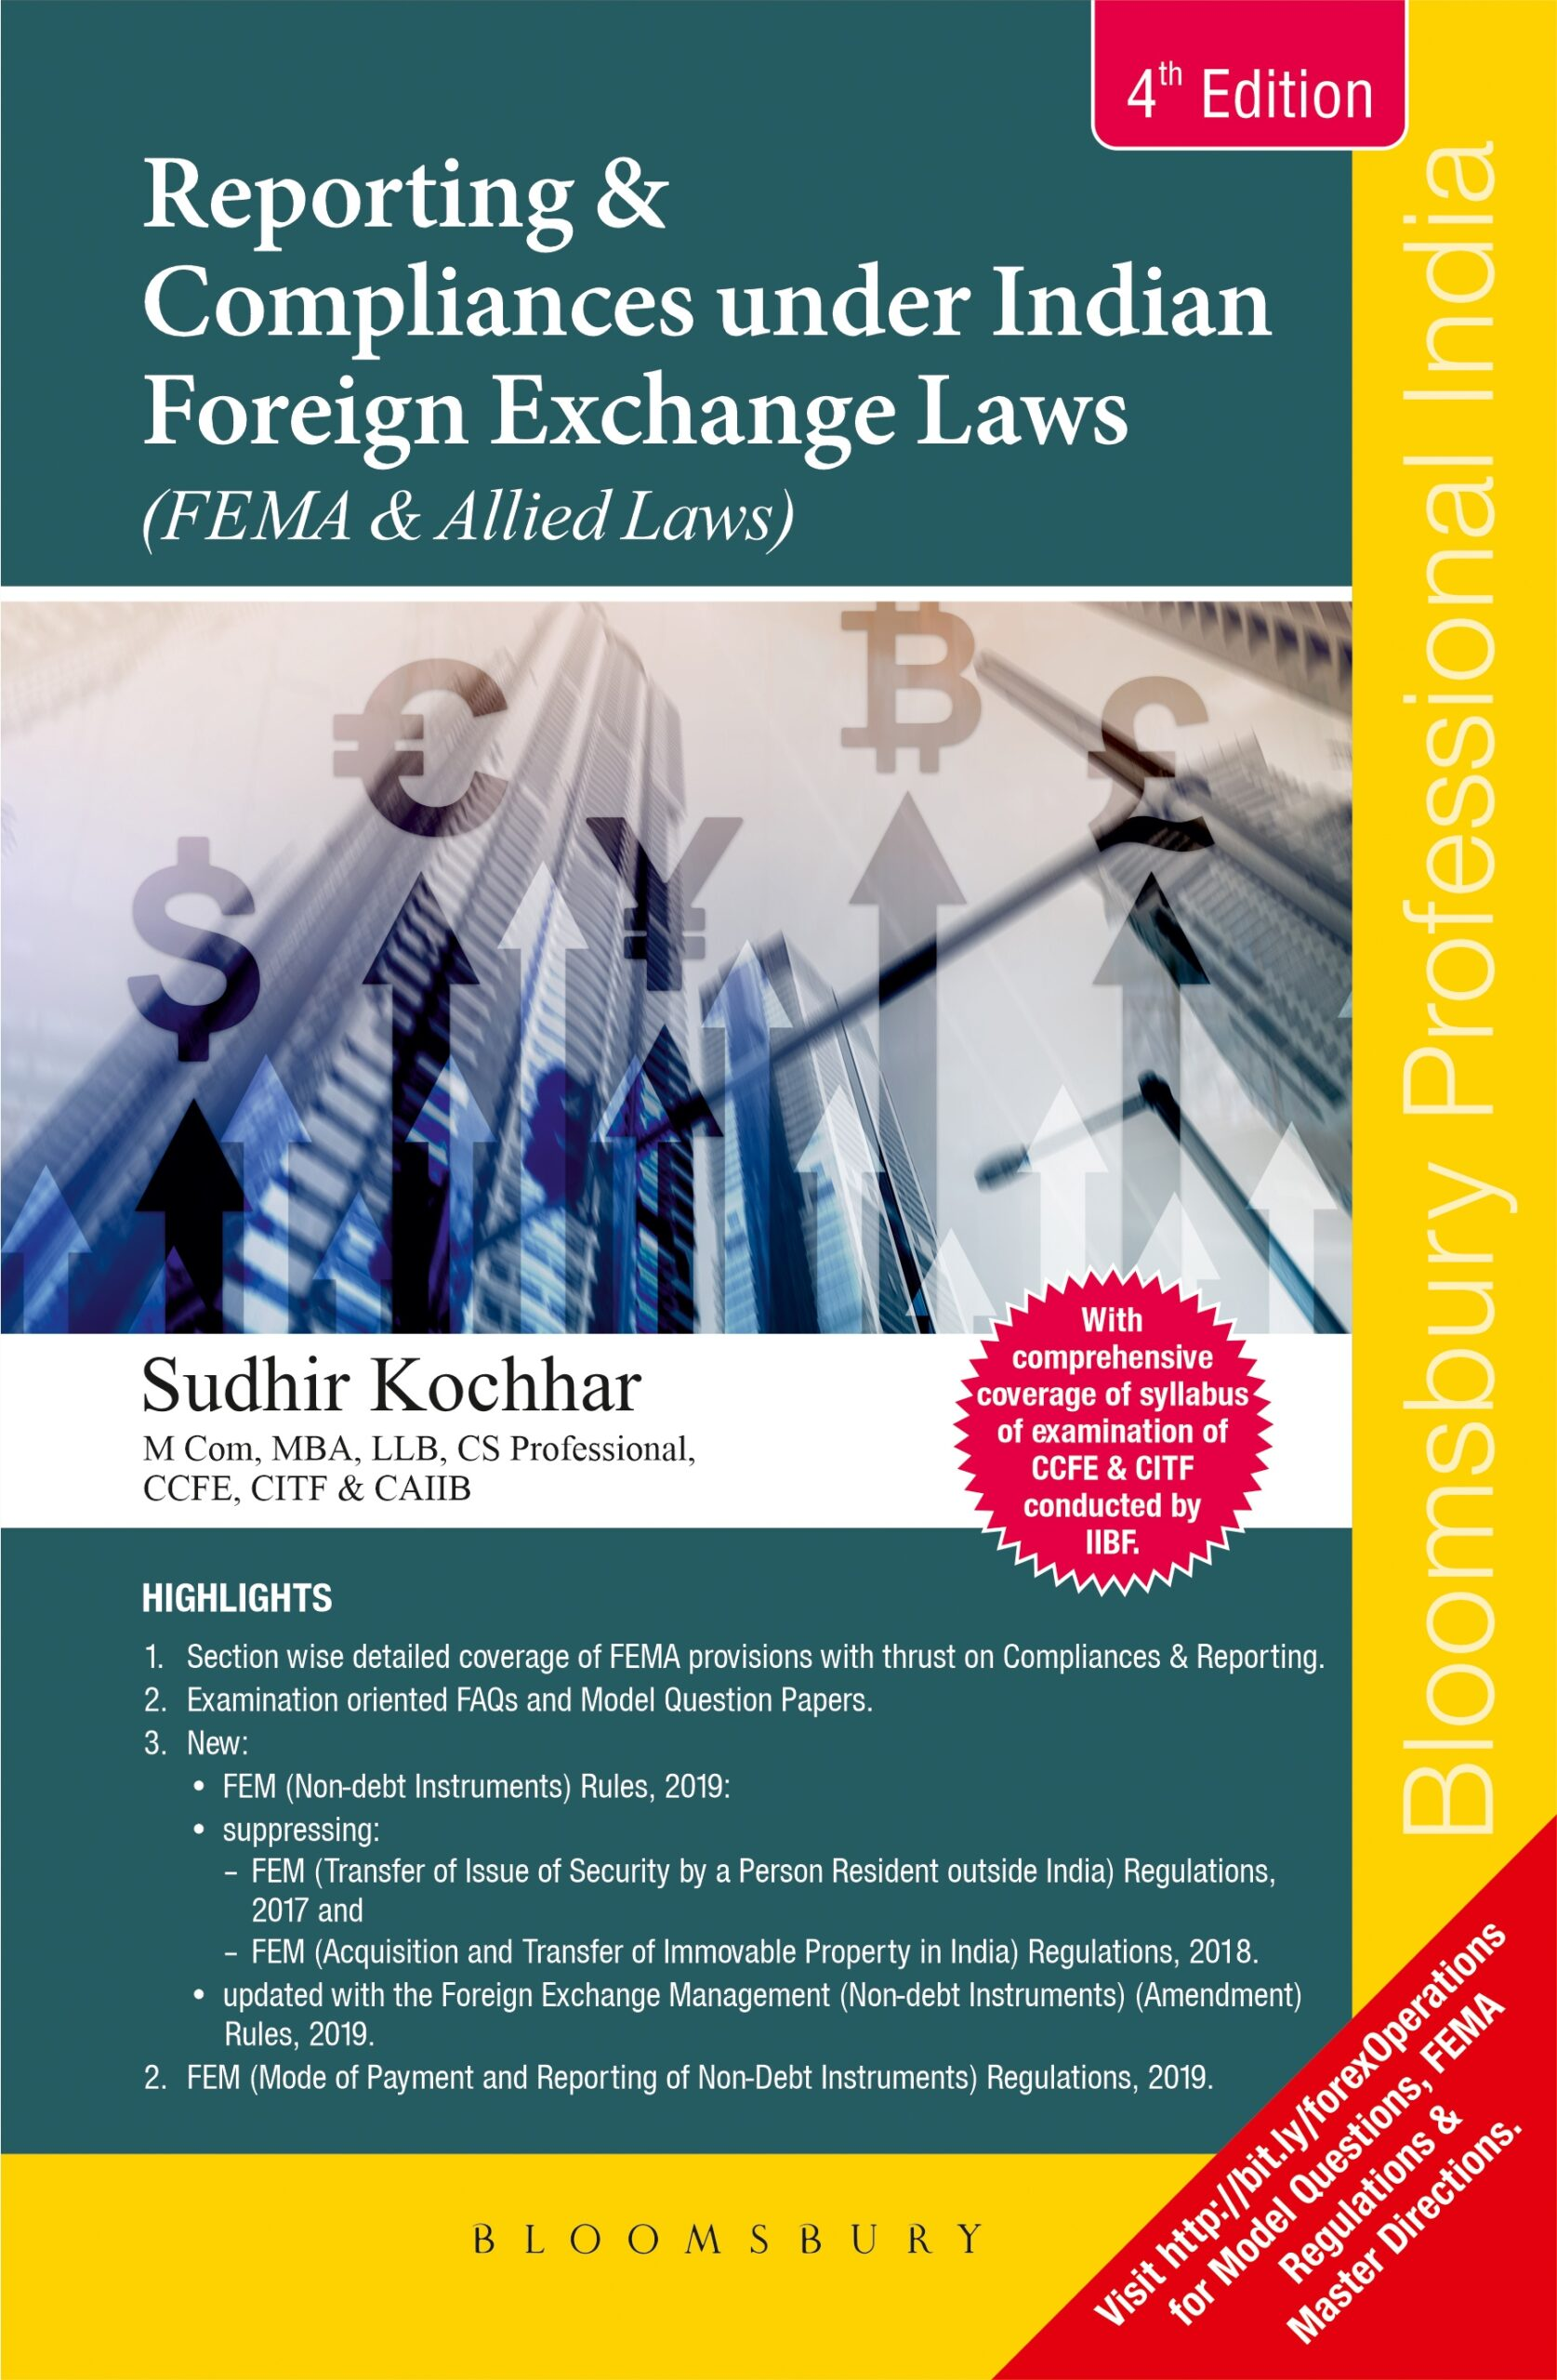 Bloomsbury Reporting and Compliances under FEMA and Allied Laws By Sudhir Kochhar (Use This Coupon Code (BLBY15MD)Extra Discount